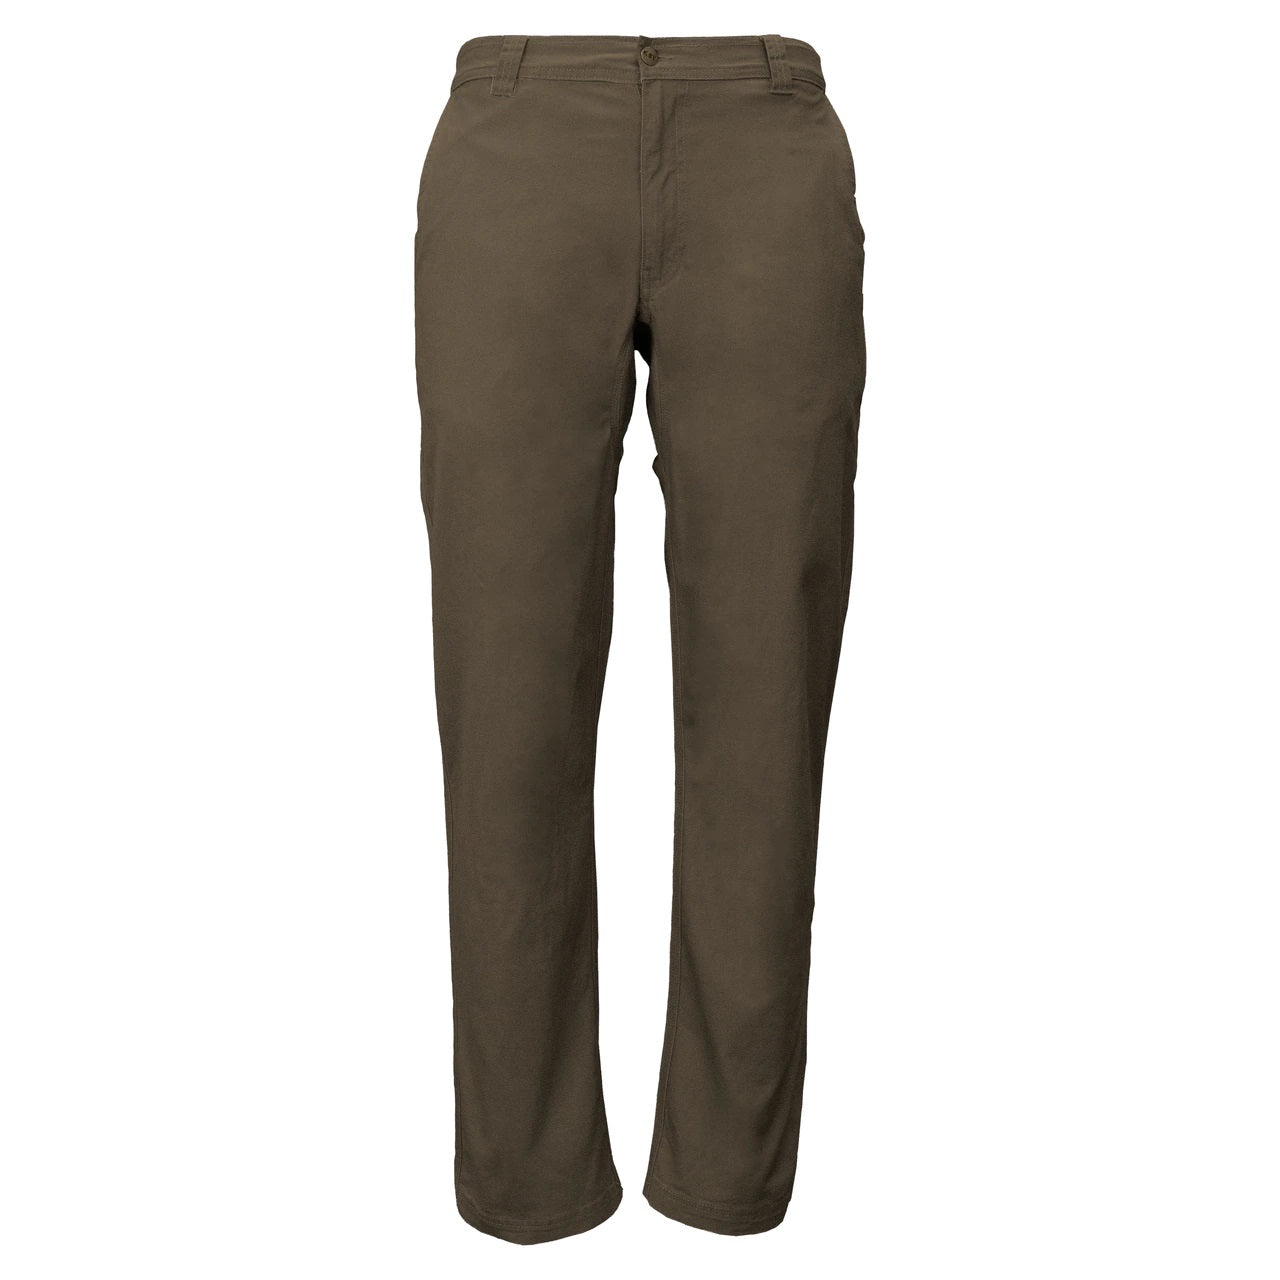 'KEY' Men's Bowman Flex Pant - Chocolate